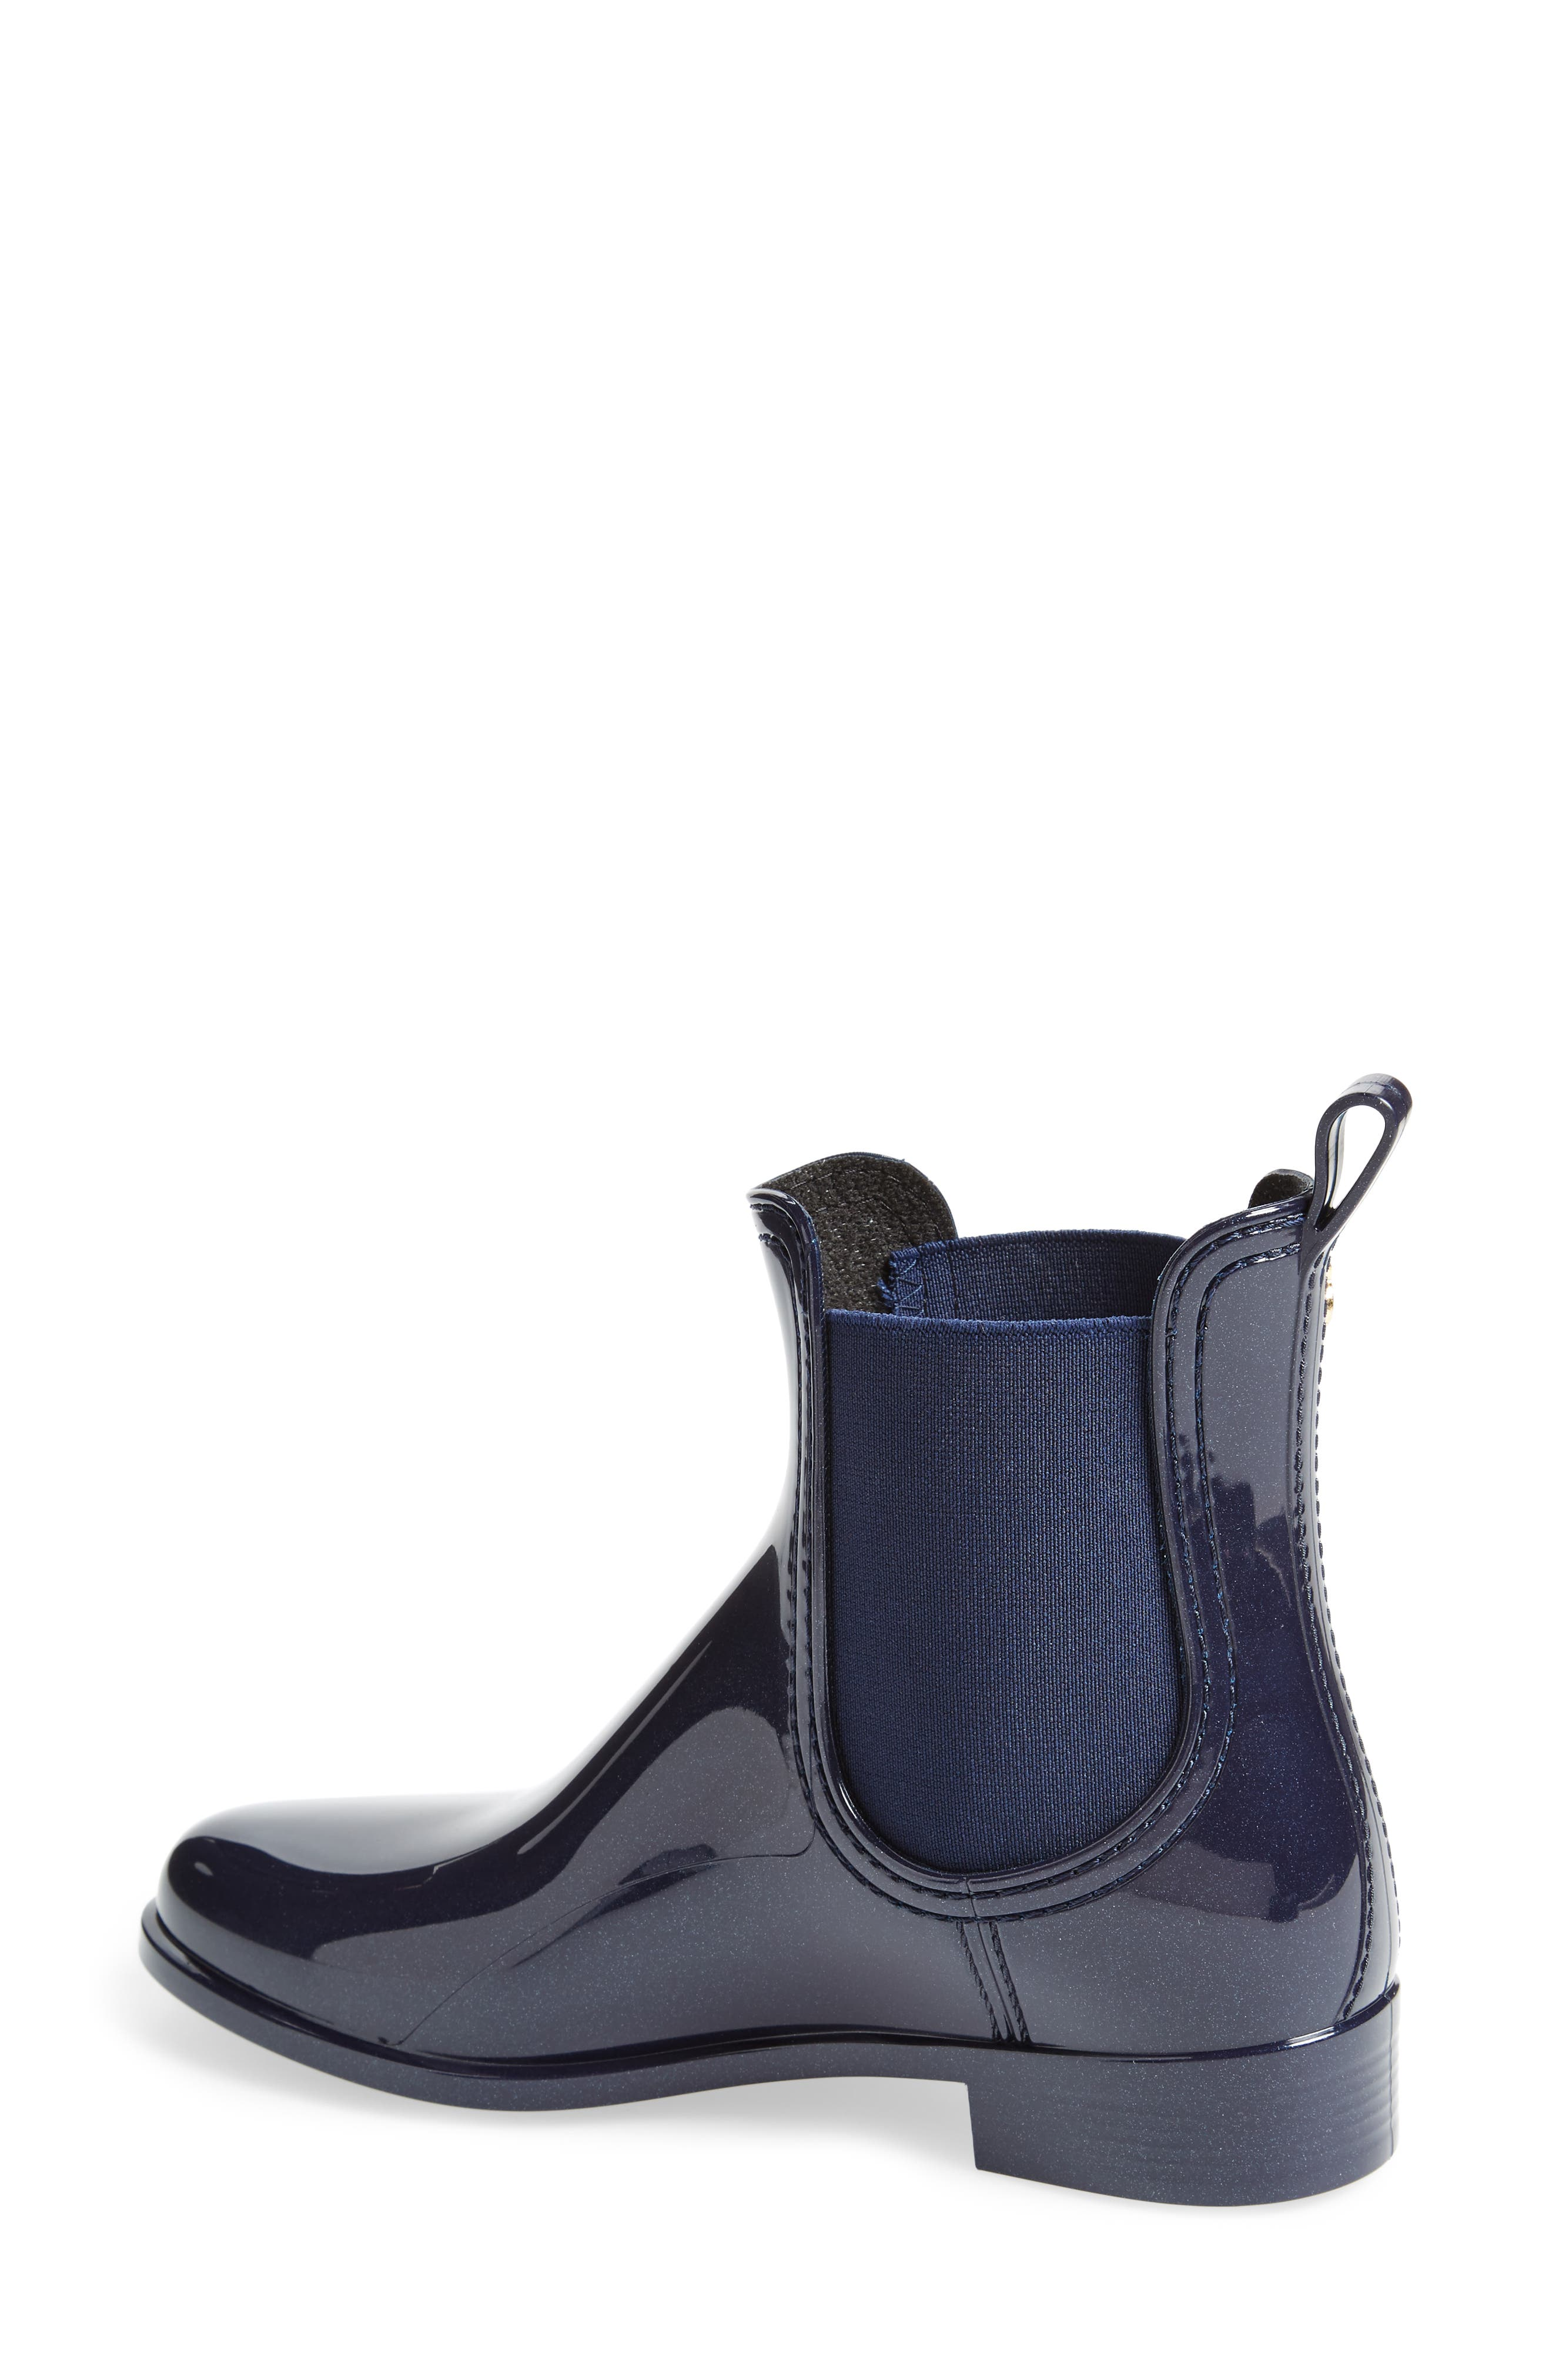 Comfy Waterproof Chelsea Boot,                             Alternate thumbnail 2, color,                             METAL BLUE MATTE